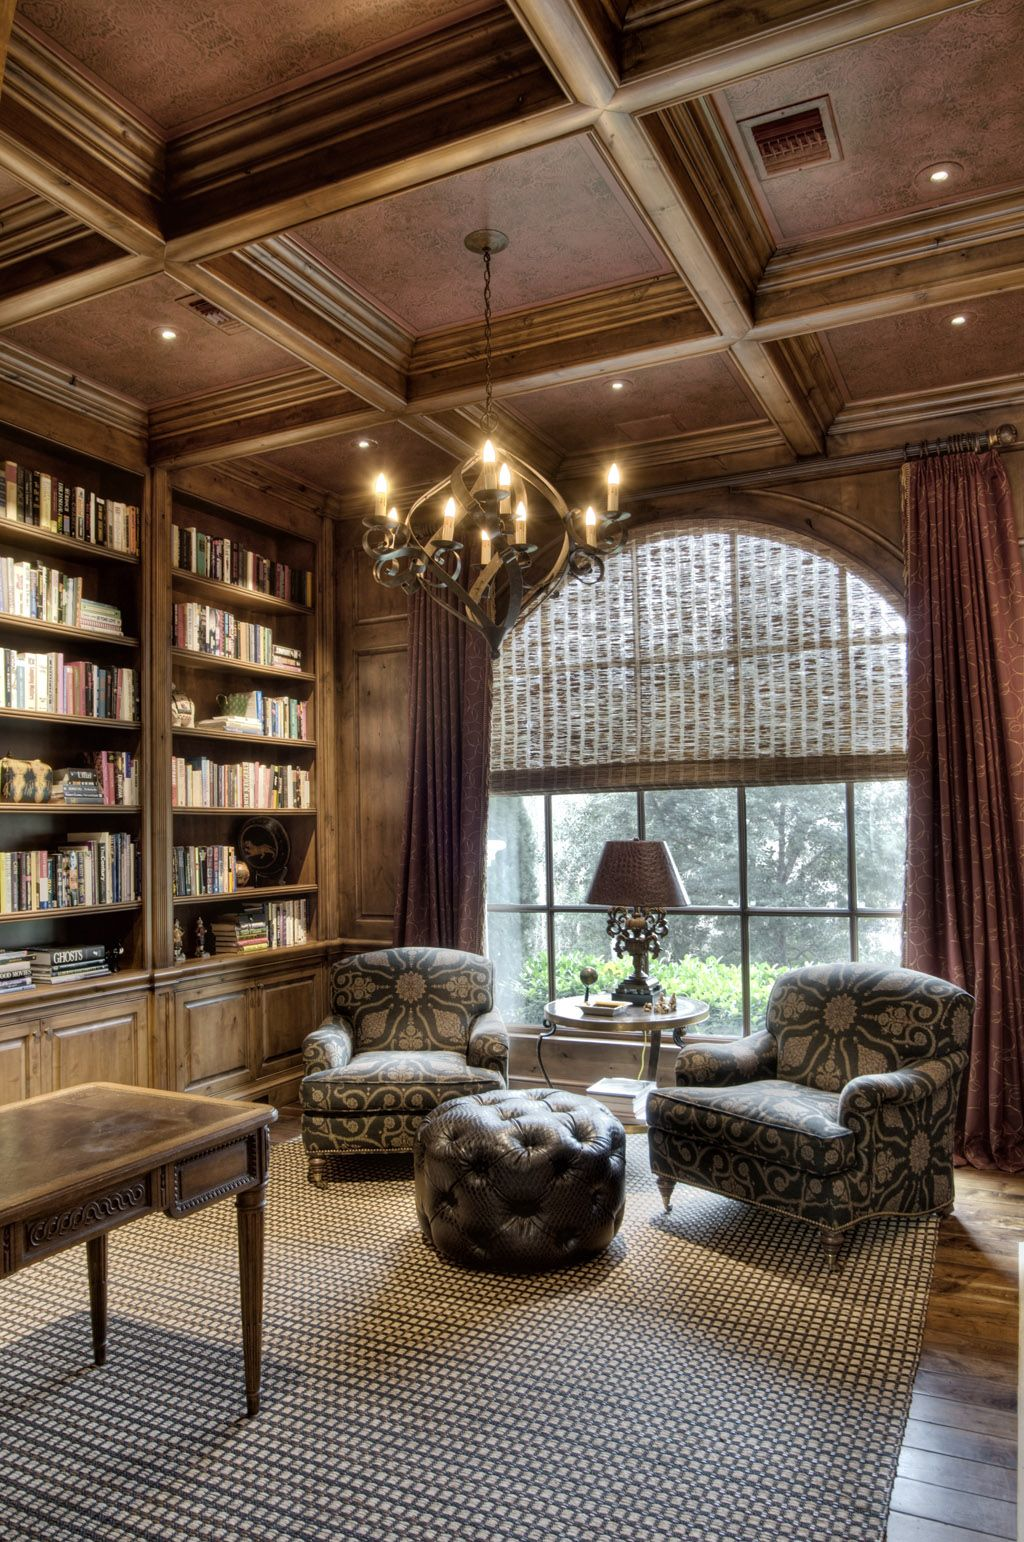 Home Library Room: Segreto Secrets Blog